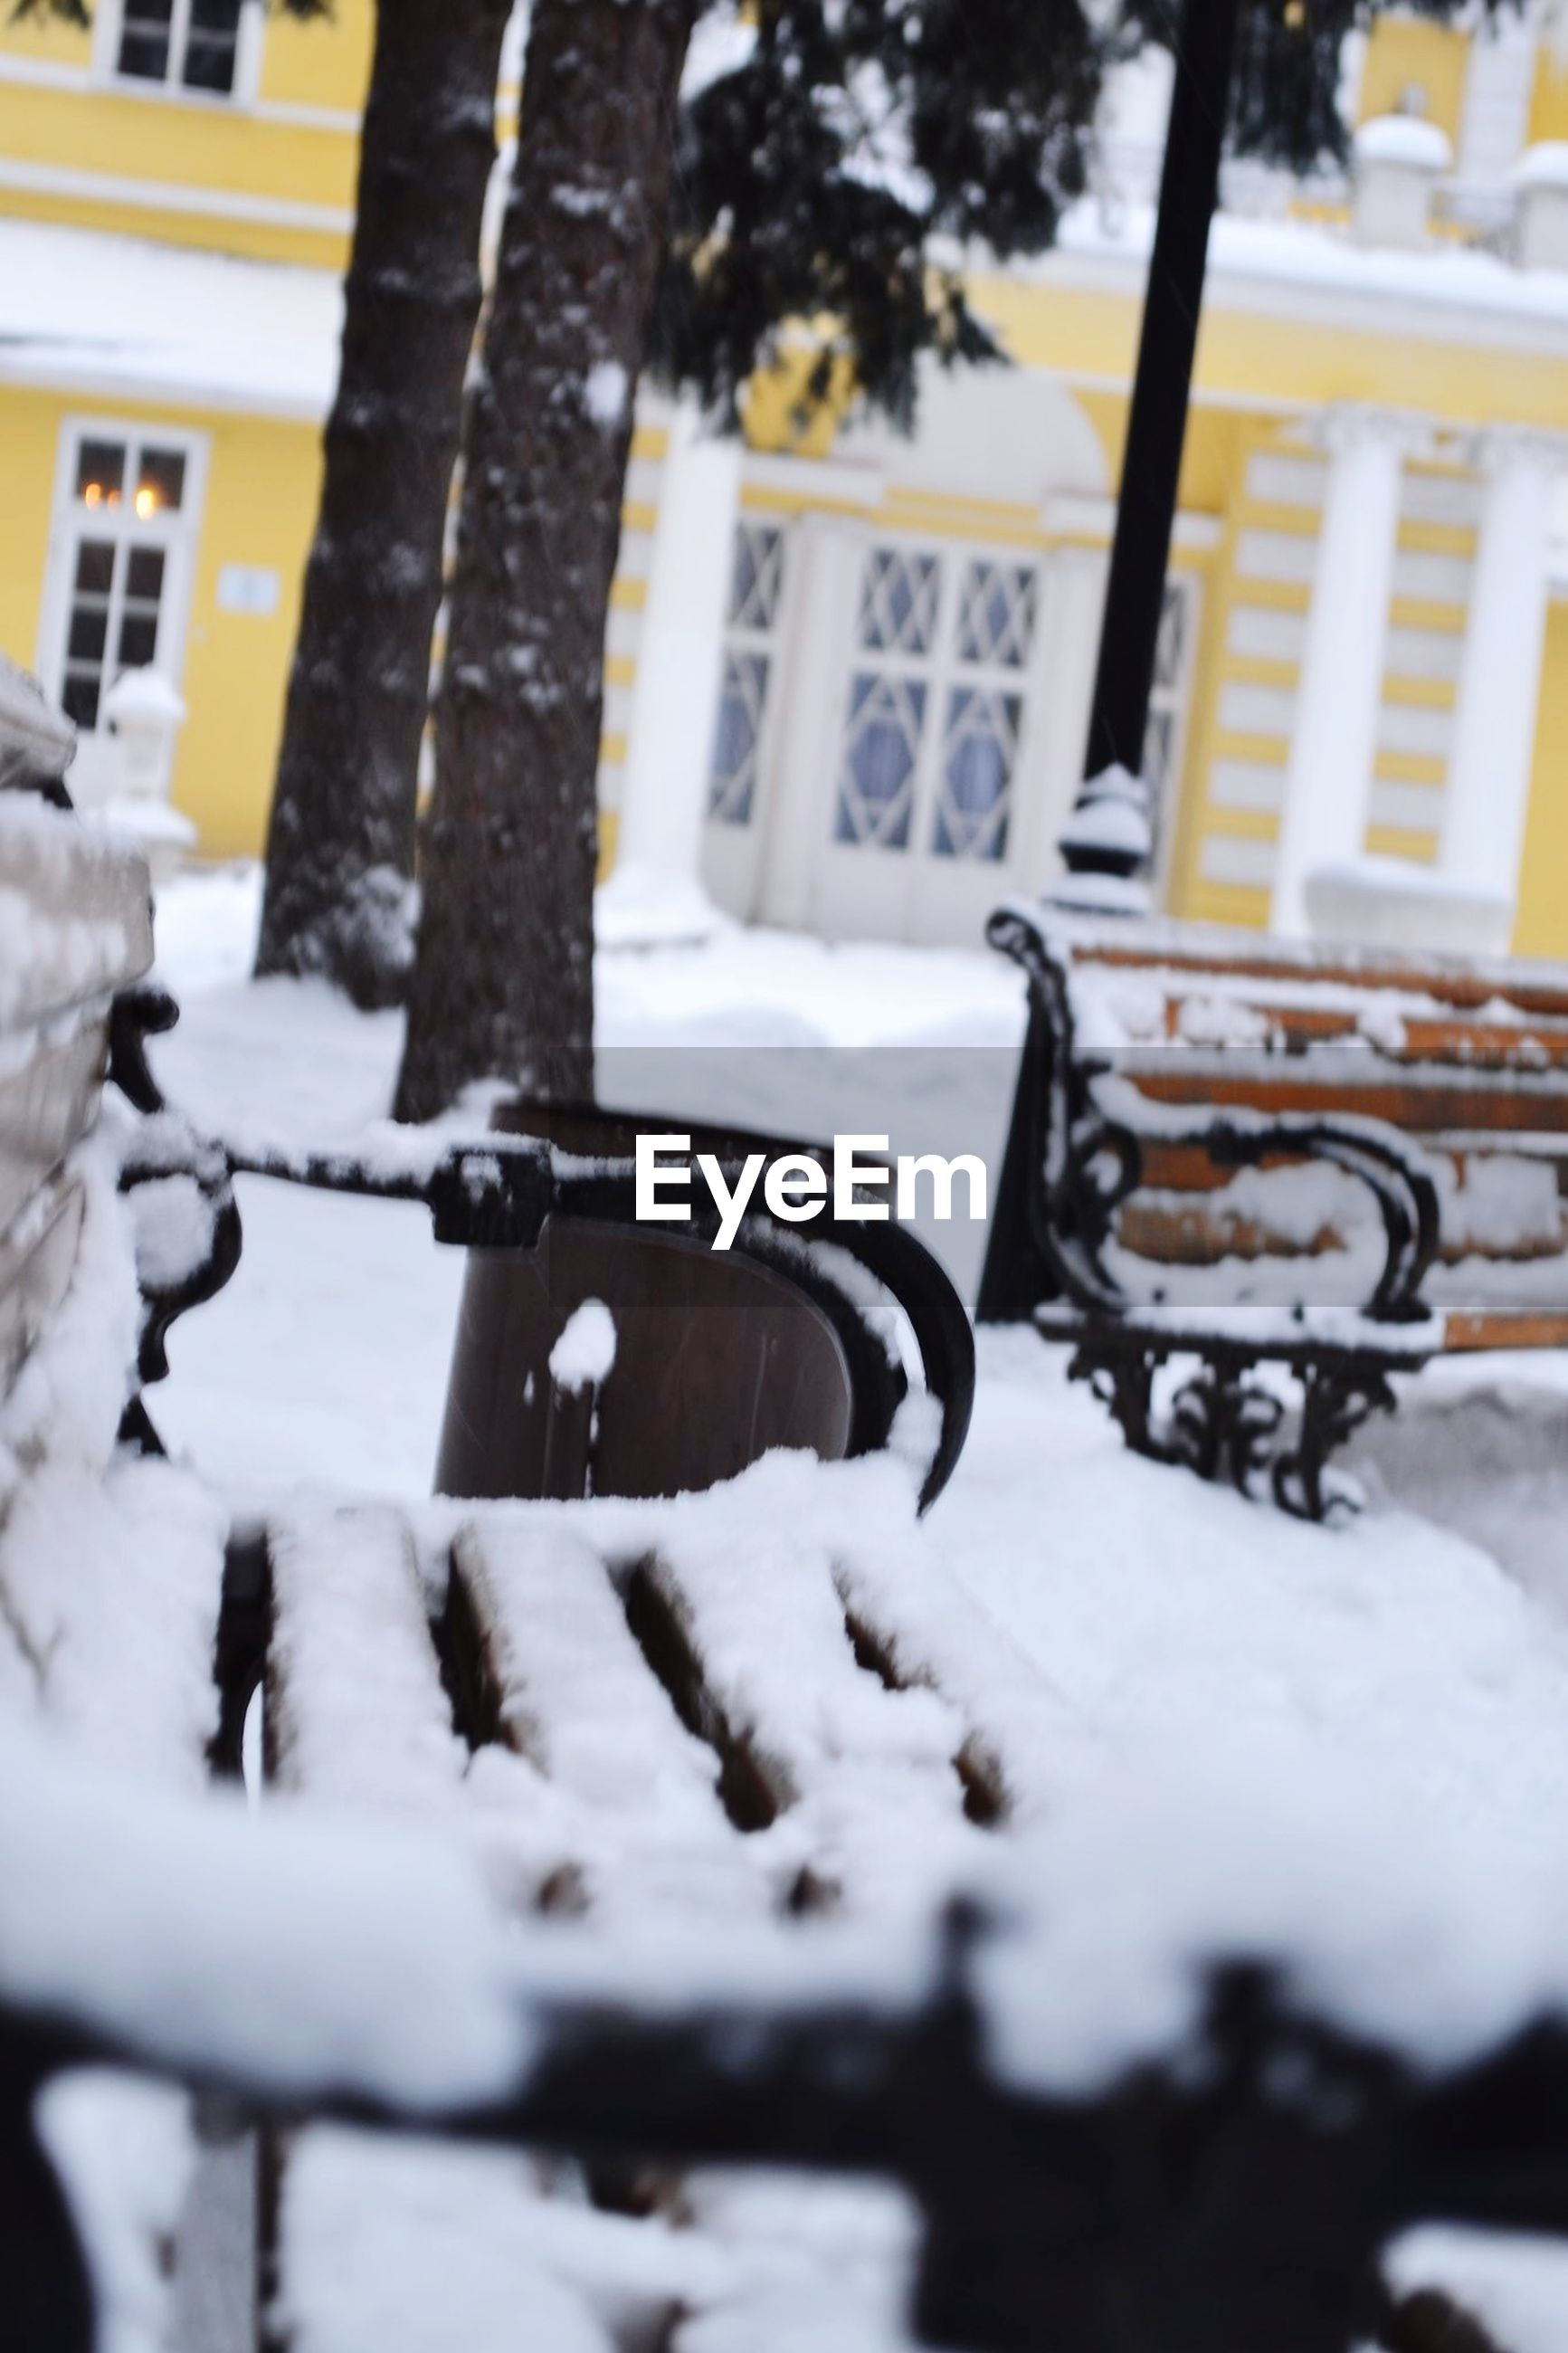 building exterior, architecture, built structure, transportation, land vehicle, mode of transport, street, snow, car, window, focus on foreground, tree, winter, city, selective focus, building, season, bicycle, cold temperature, outdoors